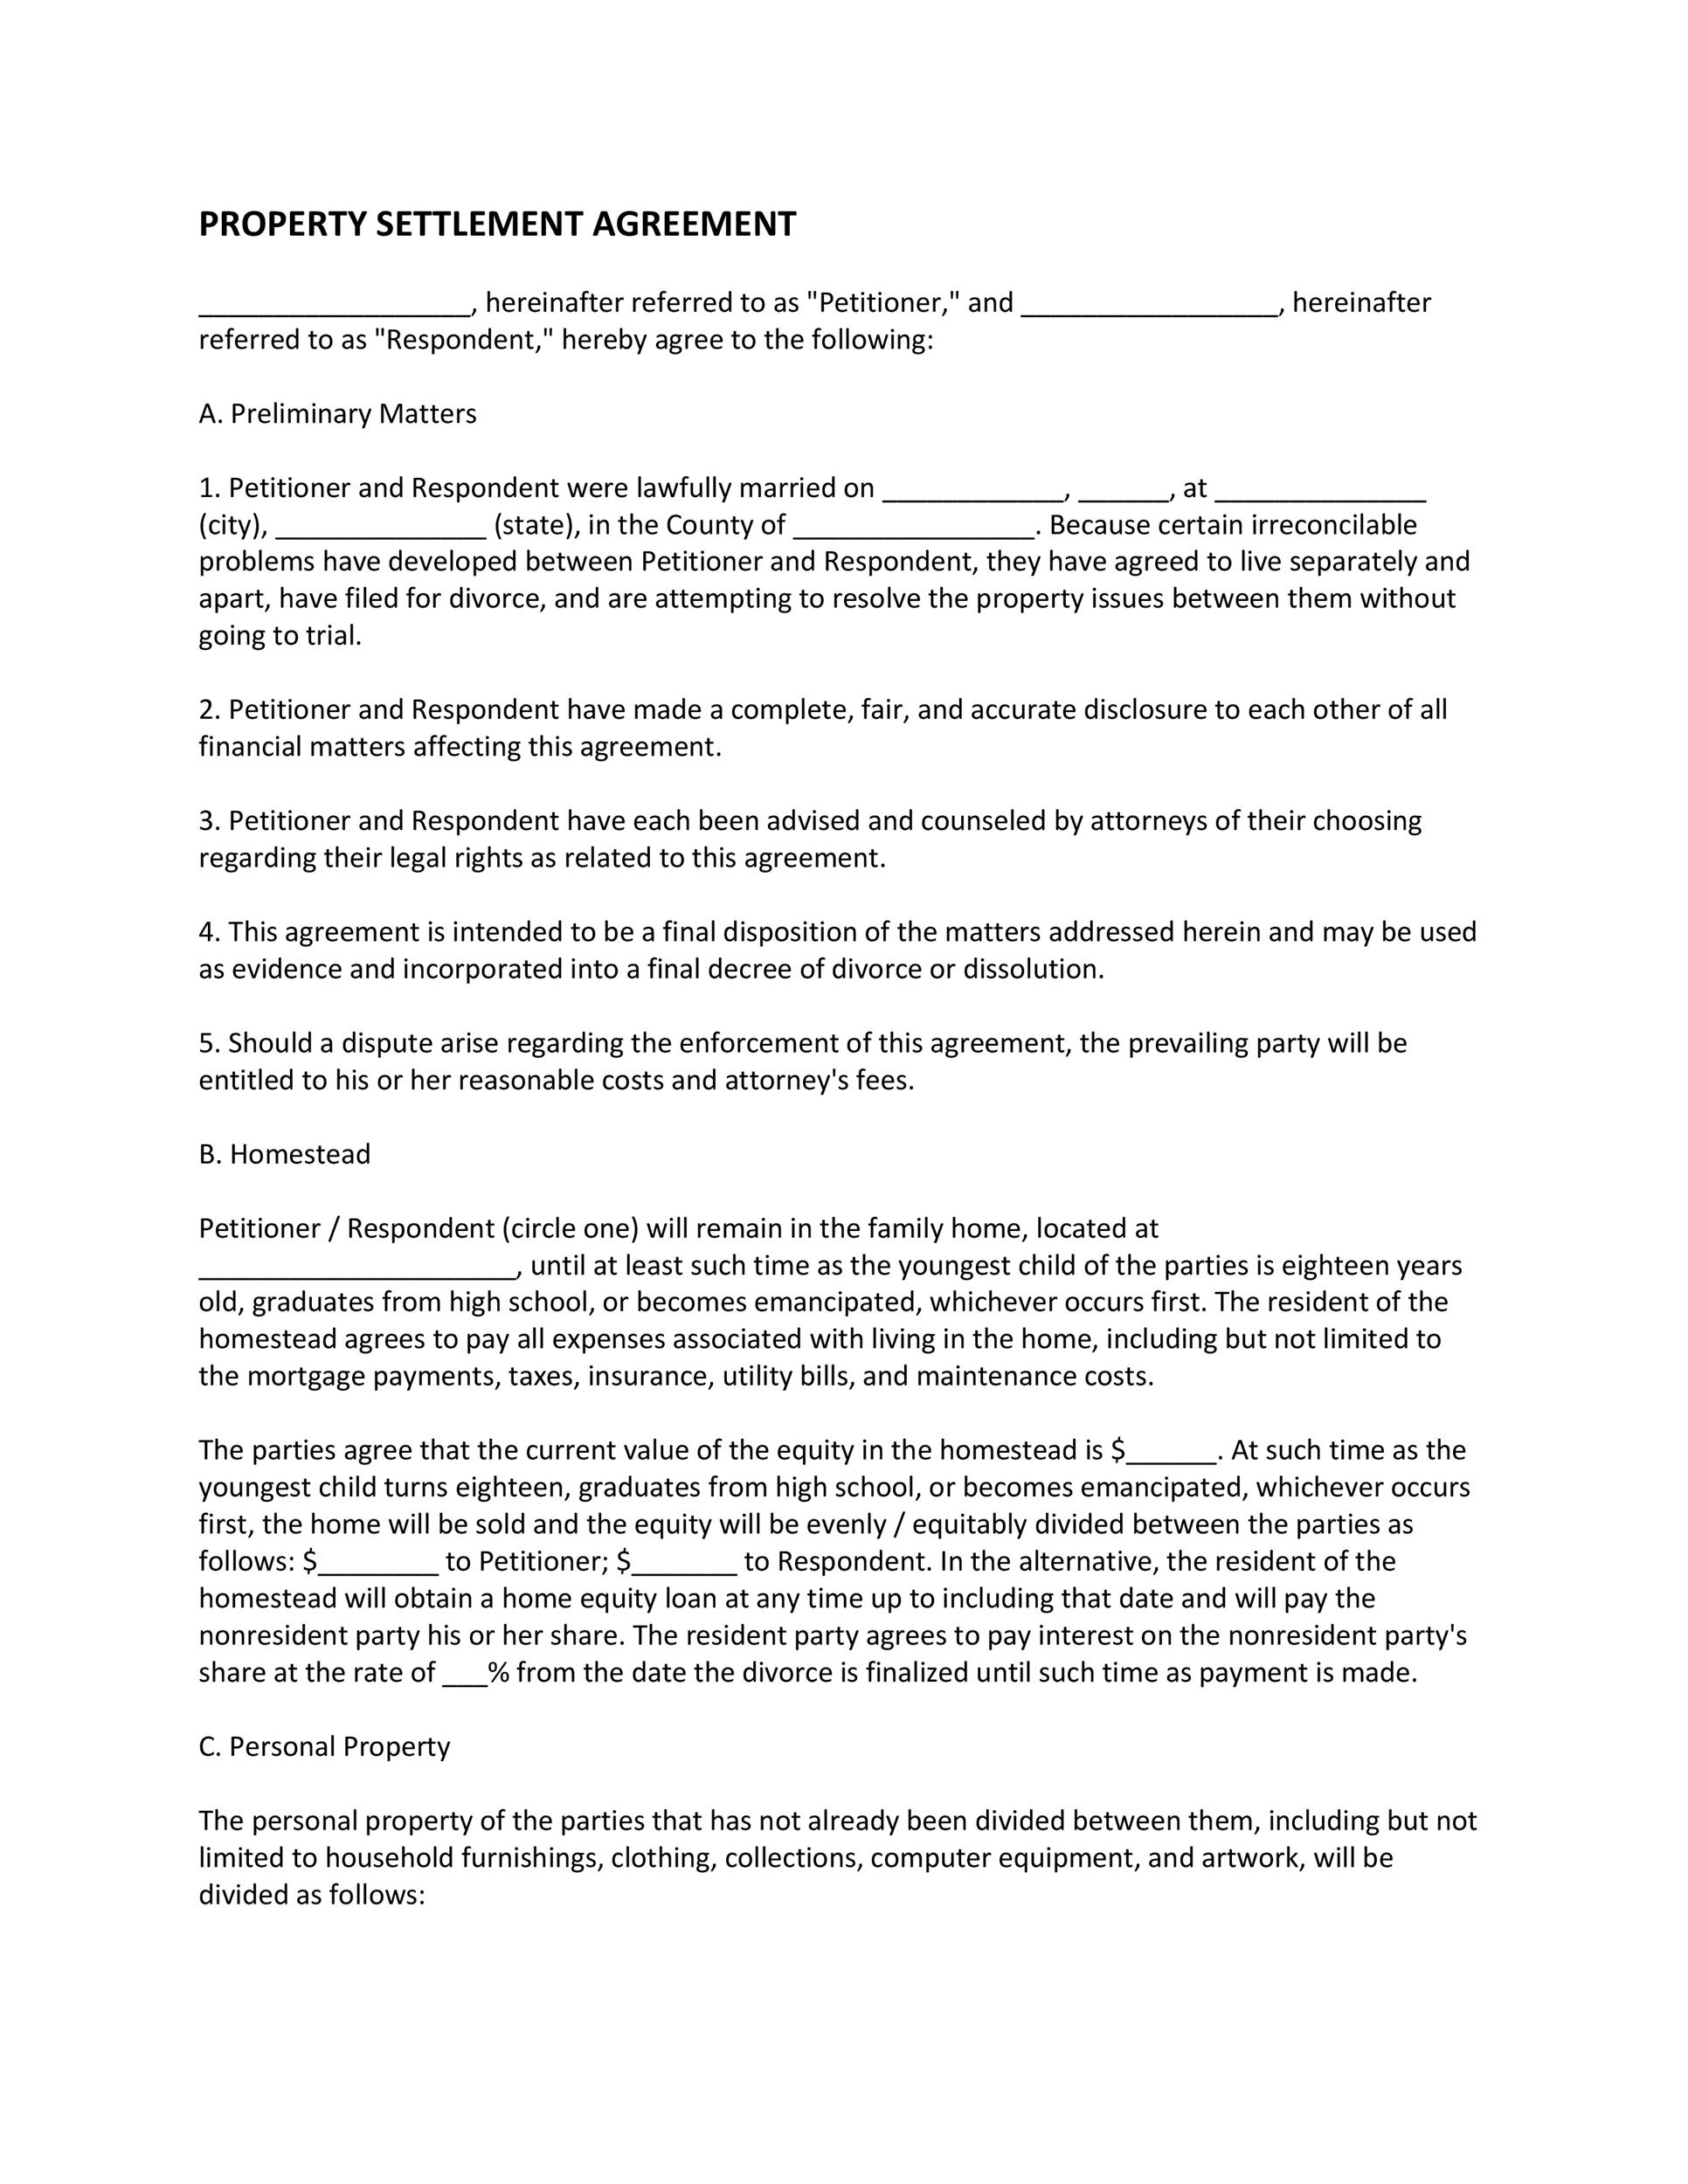 Free settlement agreement 19